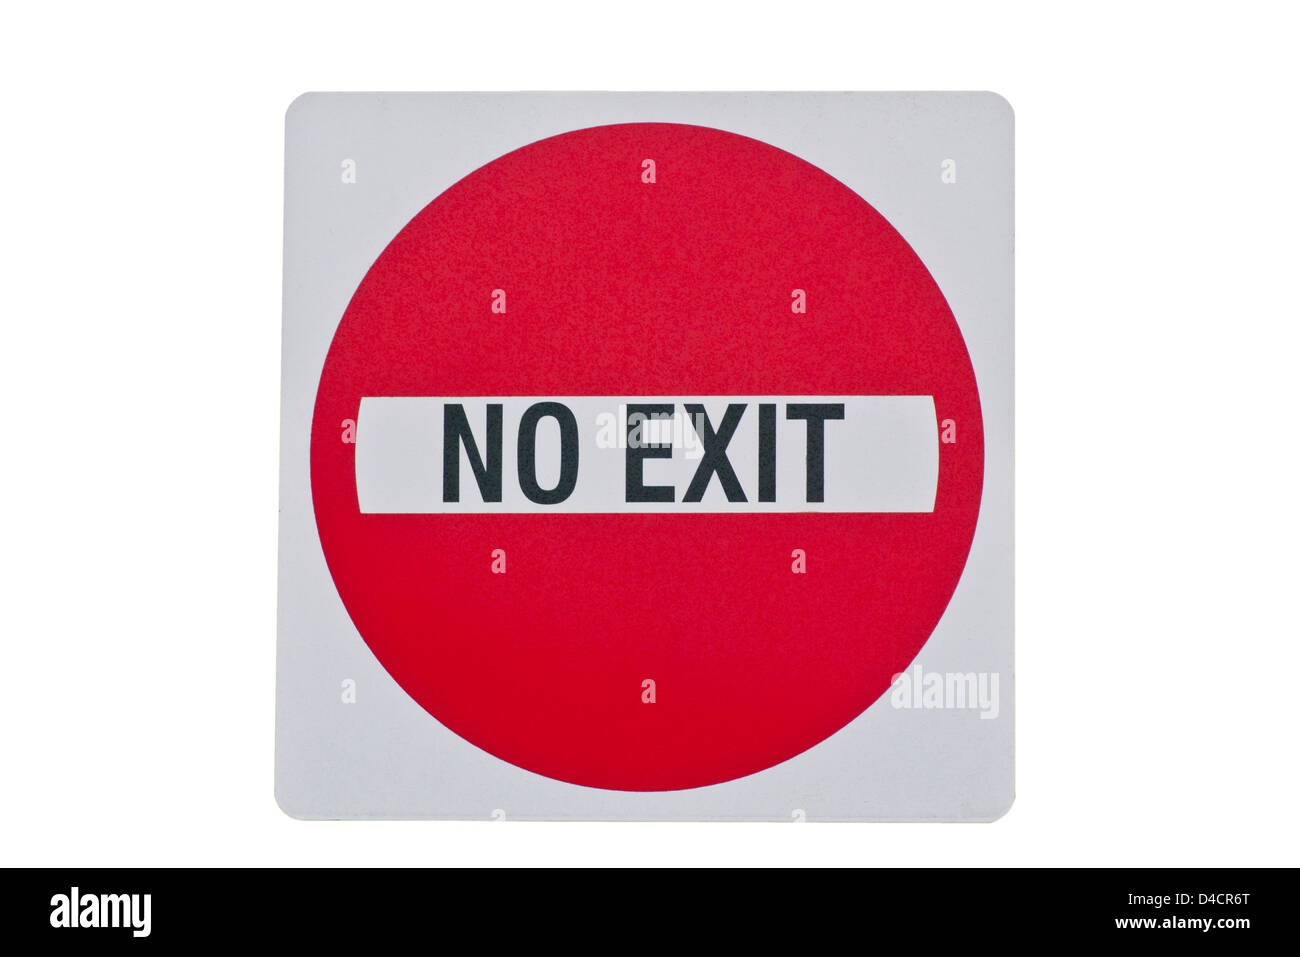 No Exit Sign - Stock Image